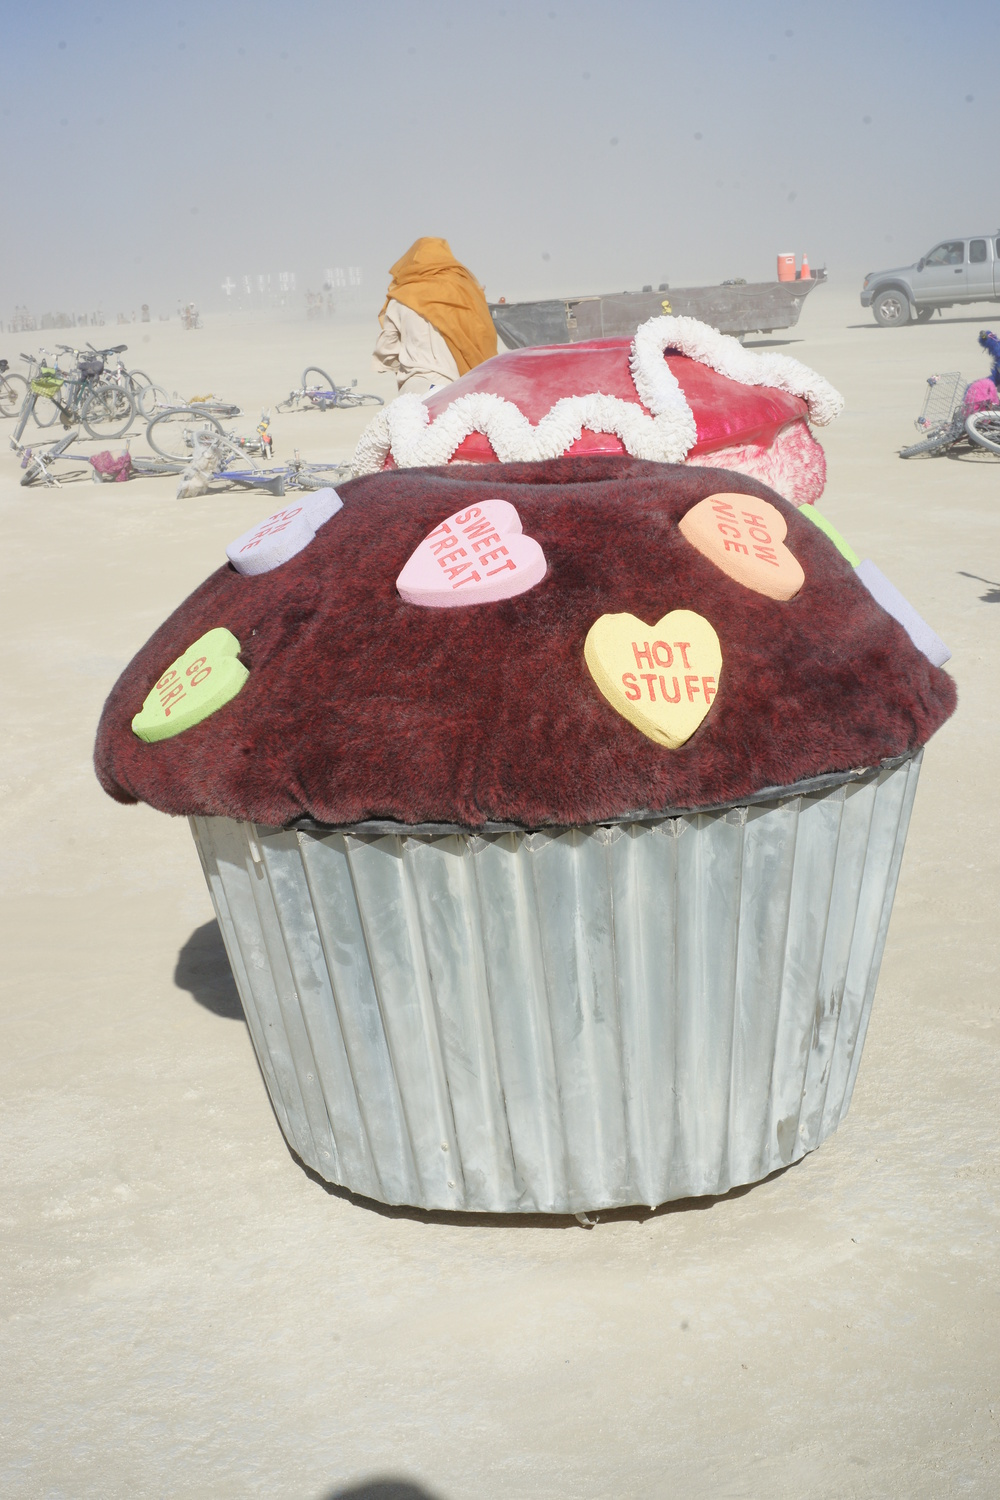 I tracked down one of the motorised cupcakes the next morning.